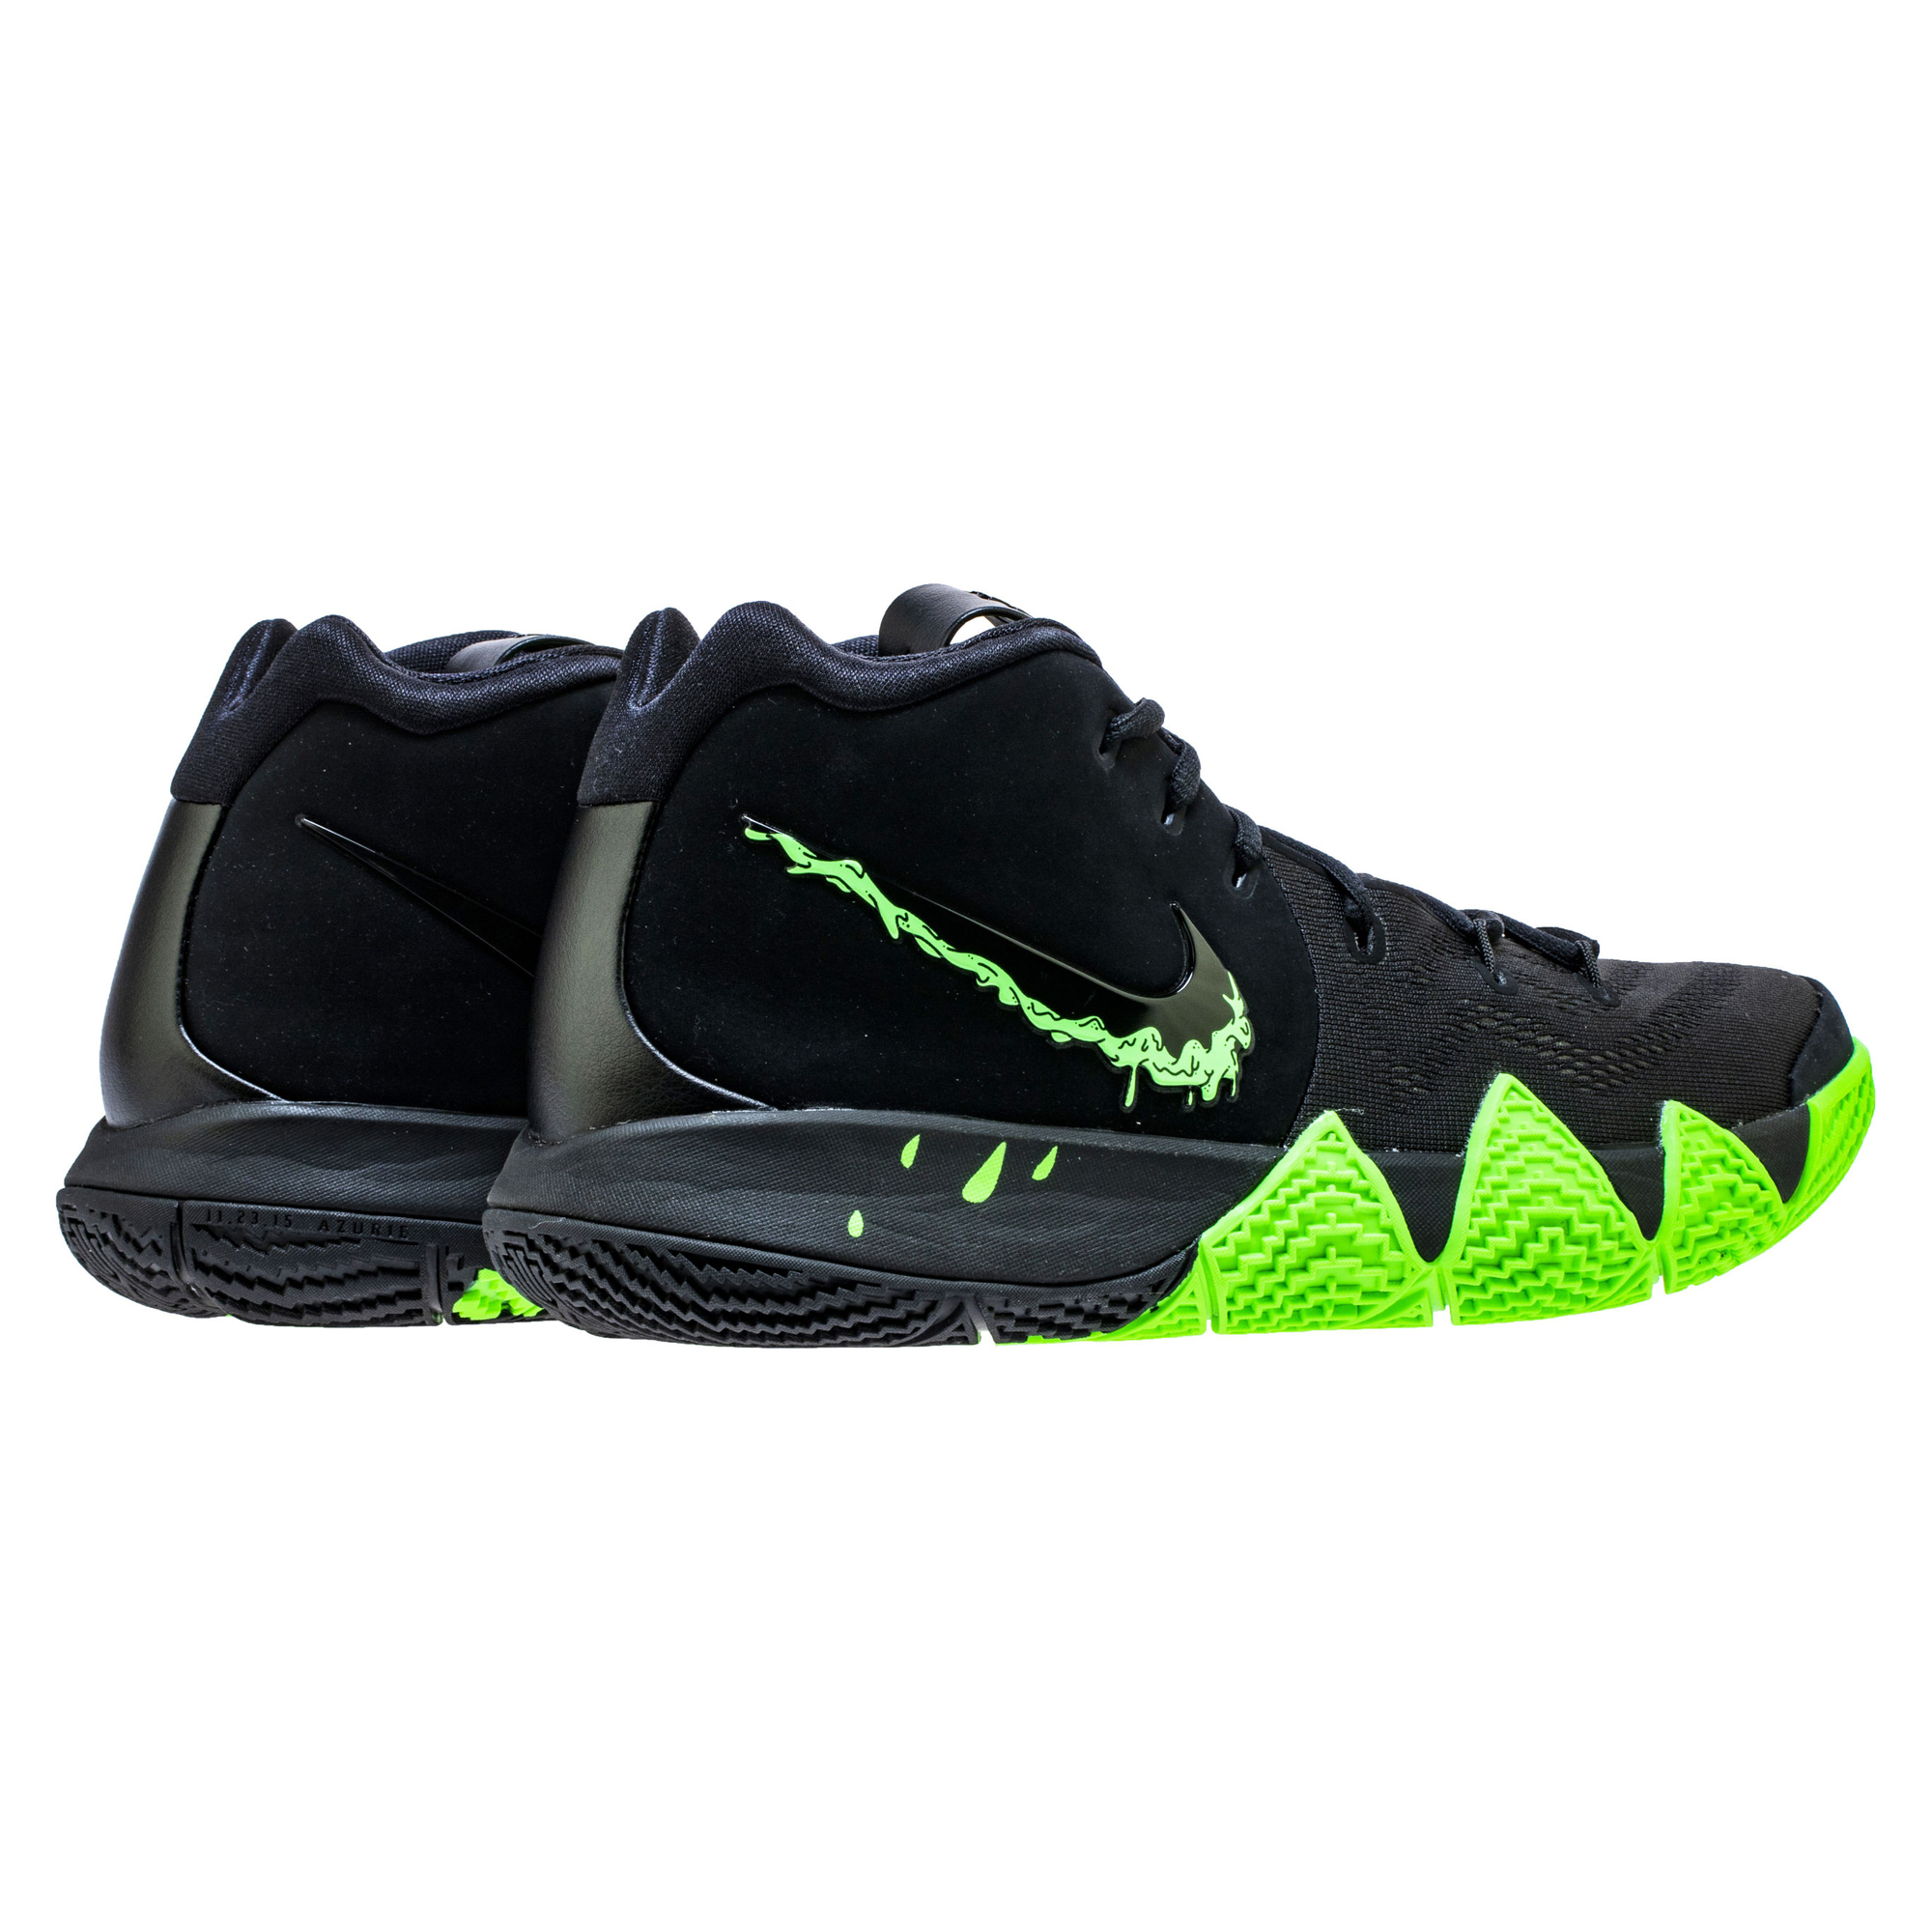 the latest b7869 0b6fe Kyrie Irving's Latest Kyrie 4 Gets Slimed - WearTesters